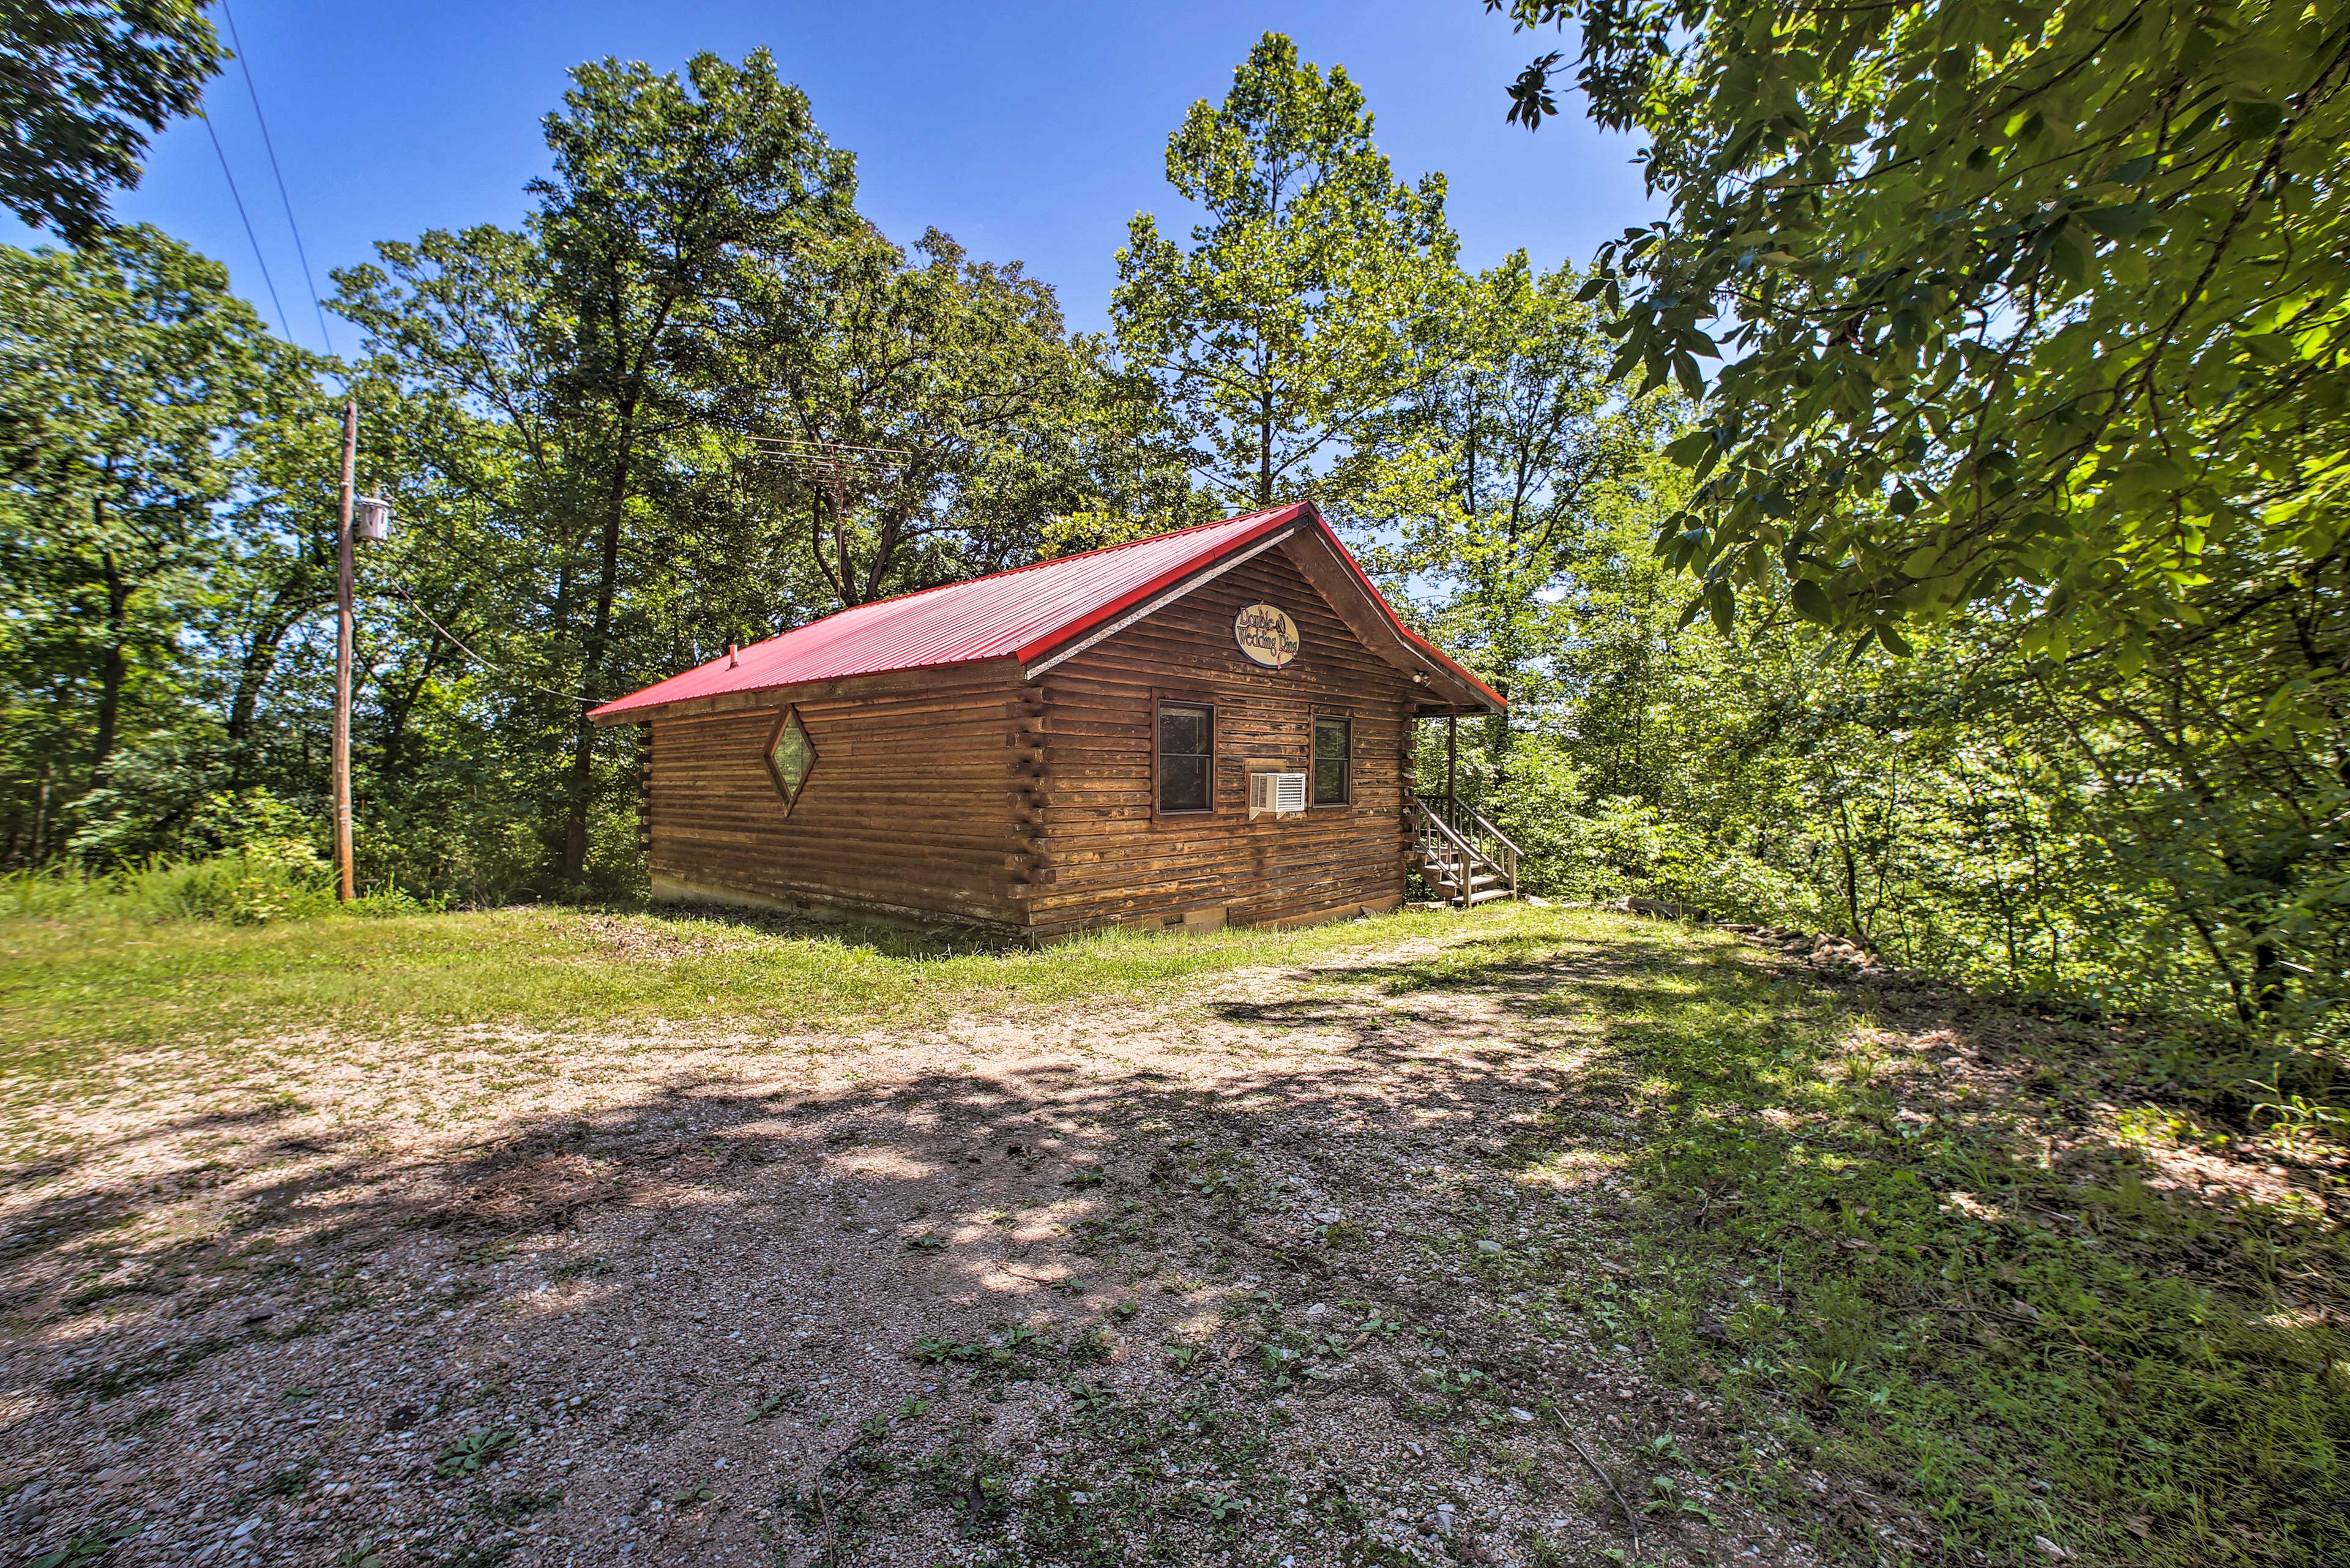 Come stay at 'Double Wedding Ring' cabin with your loved one!